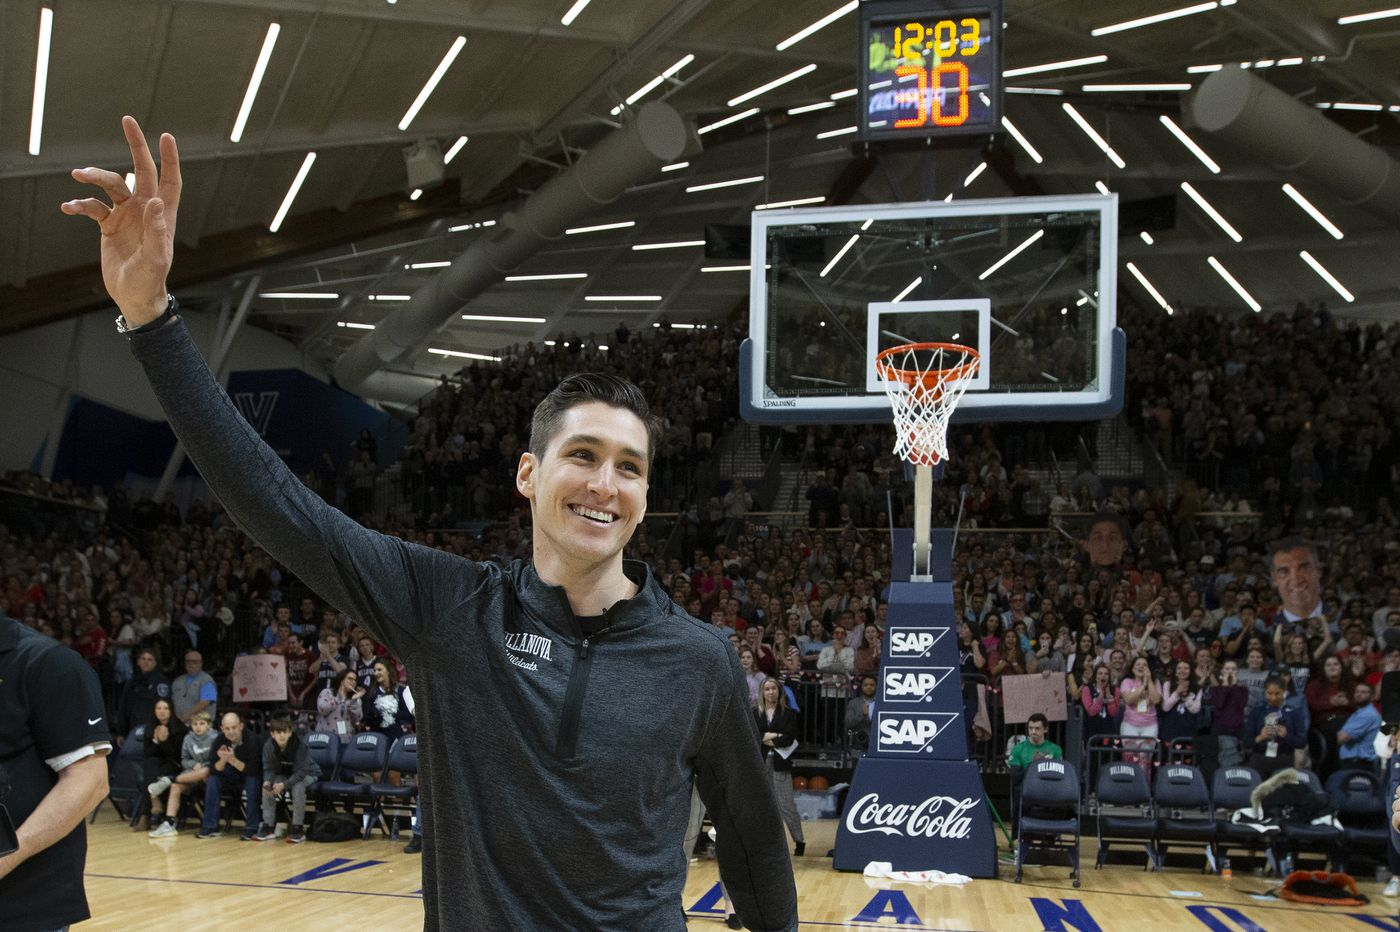 Villanova fighting to remain successful in the Big East it created | Bob Ford